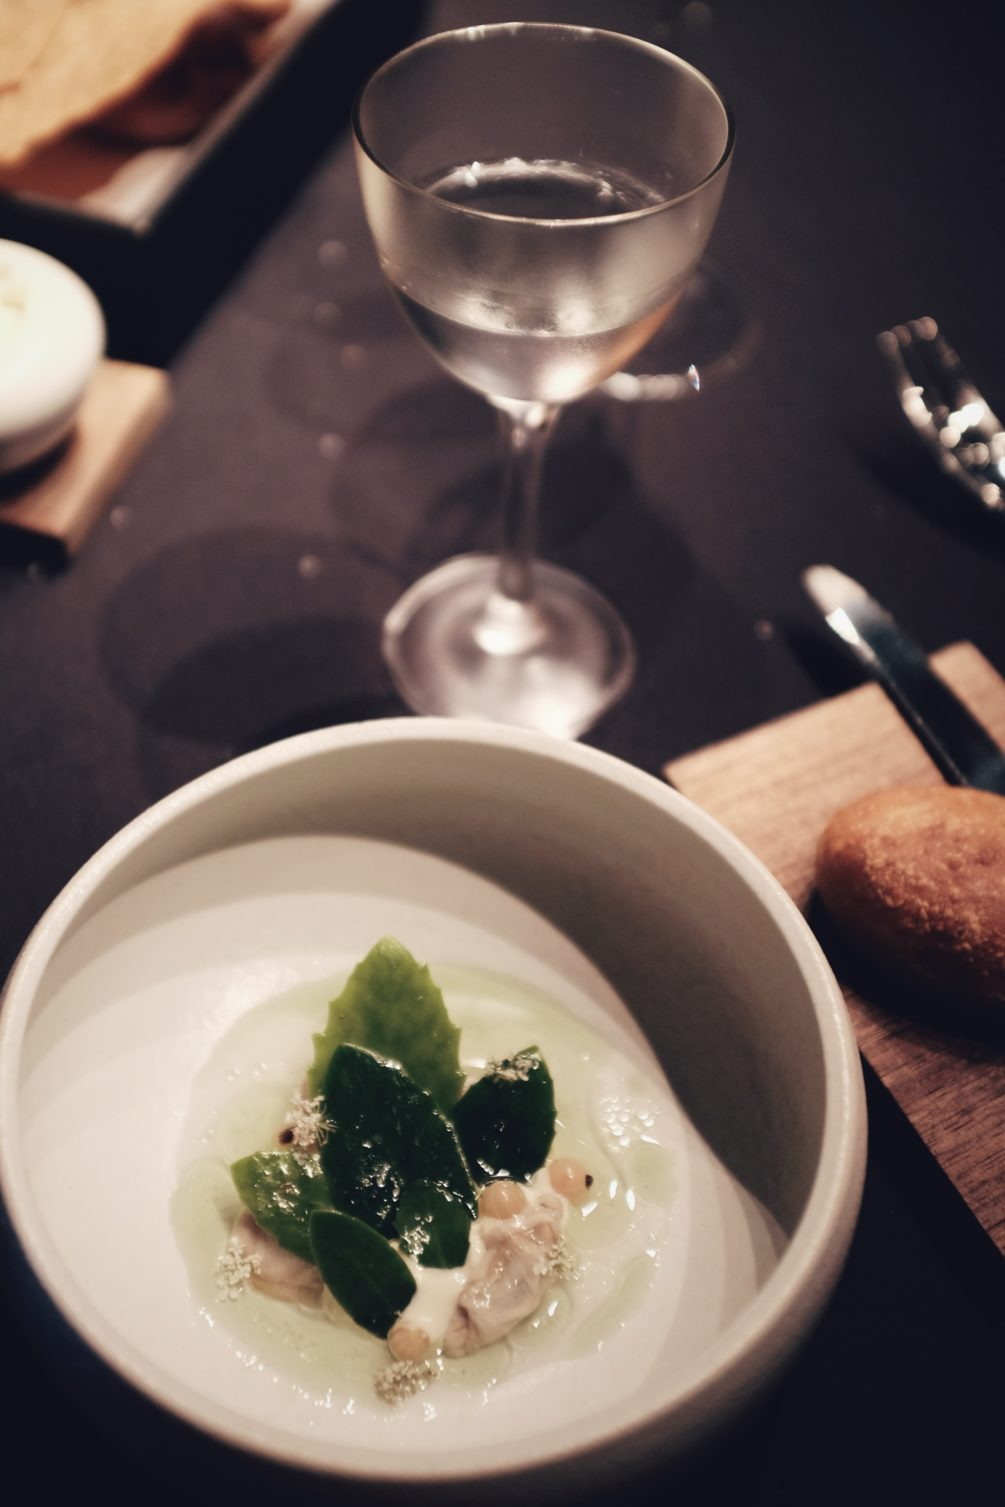 oyster from taunton bay, maine with white currant and juniper